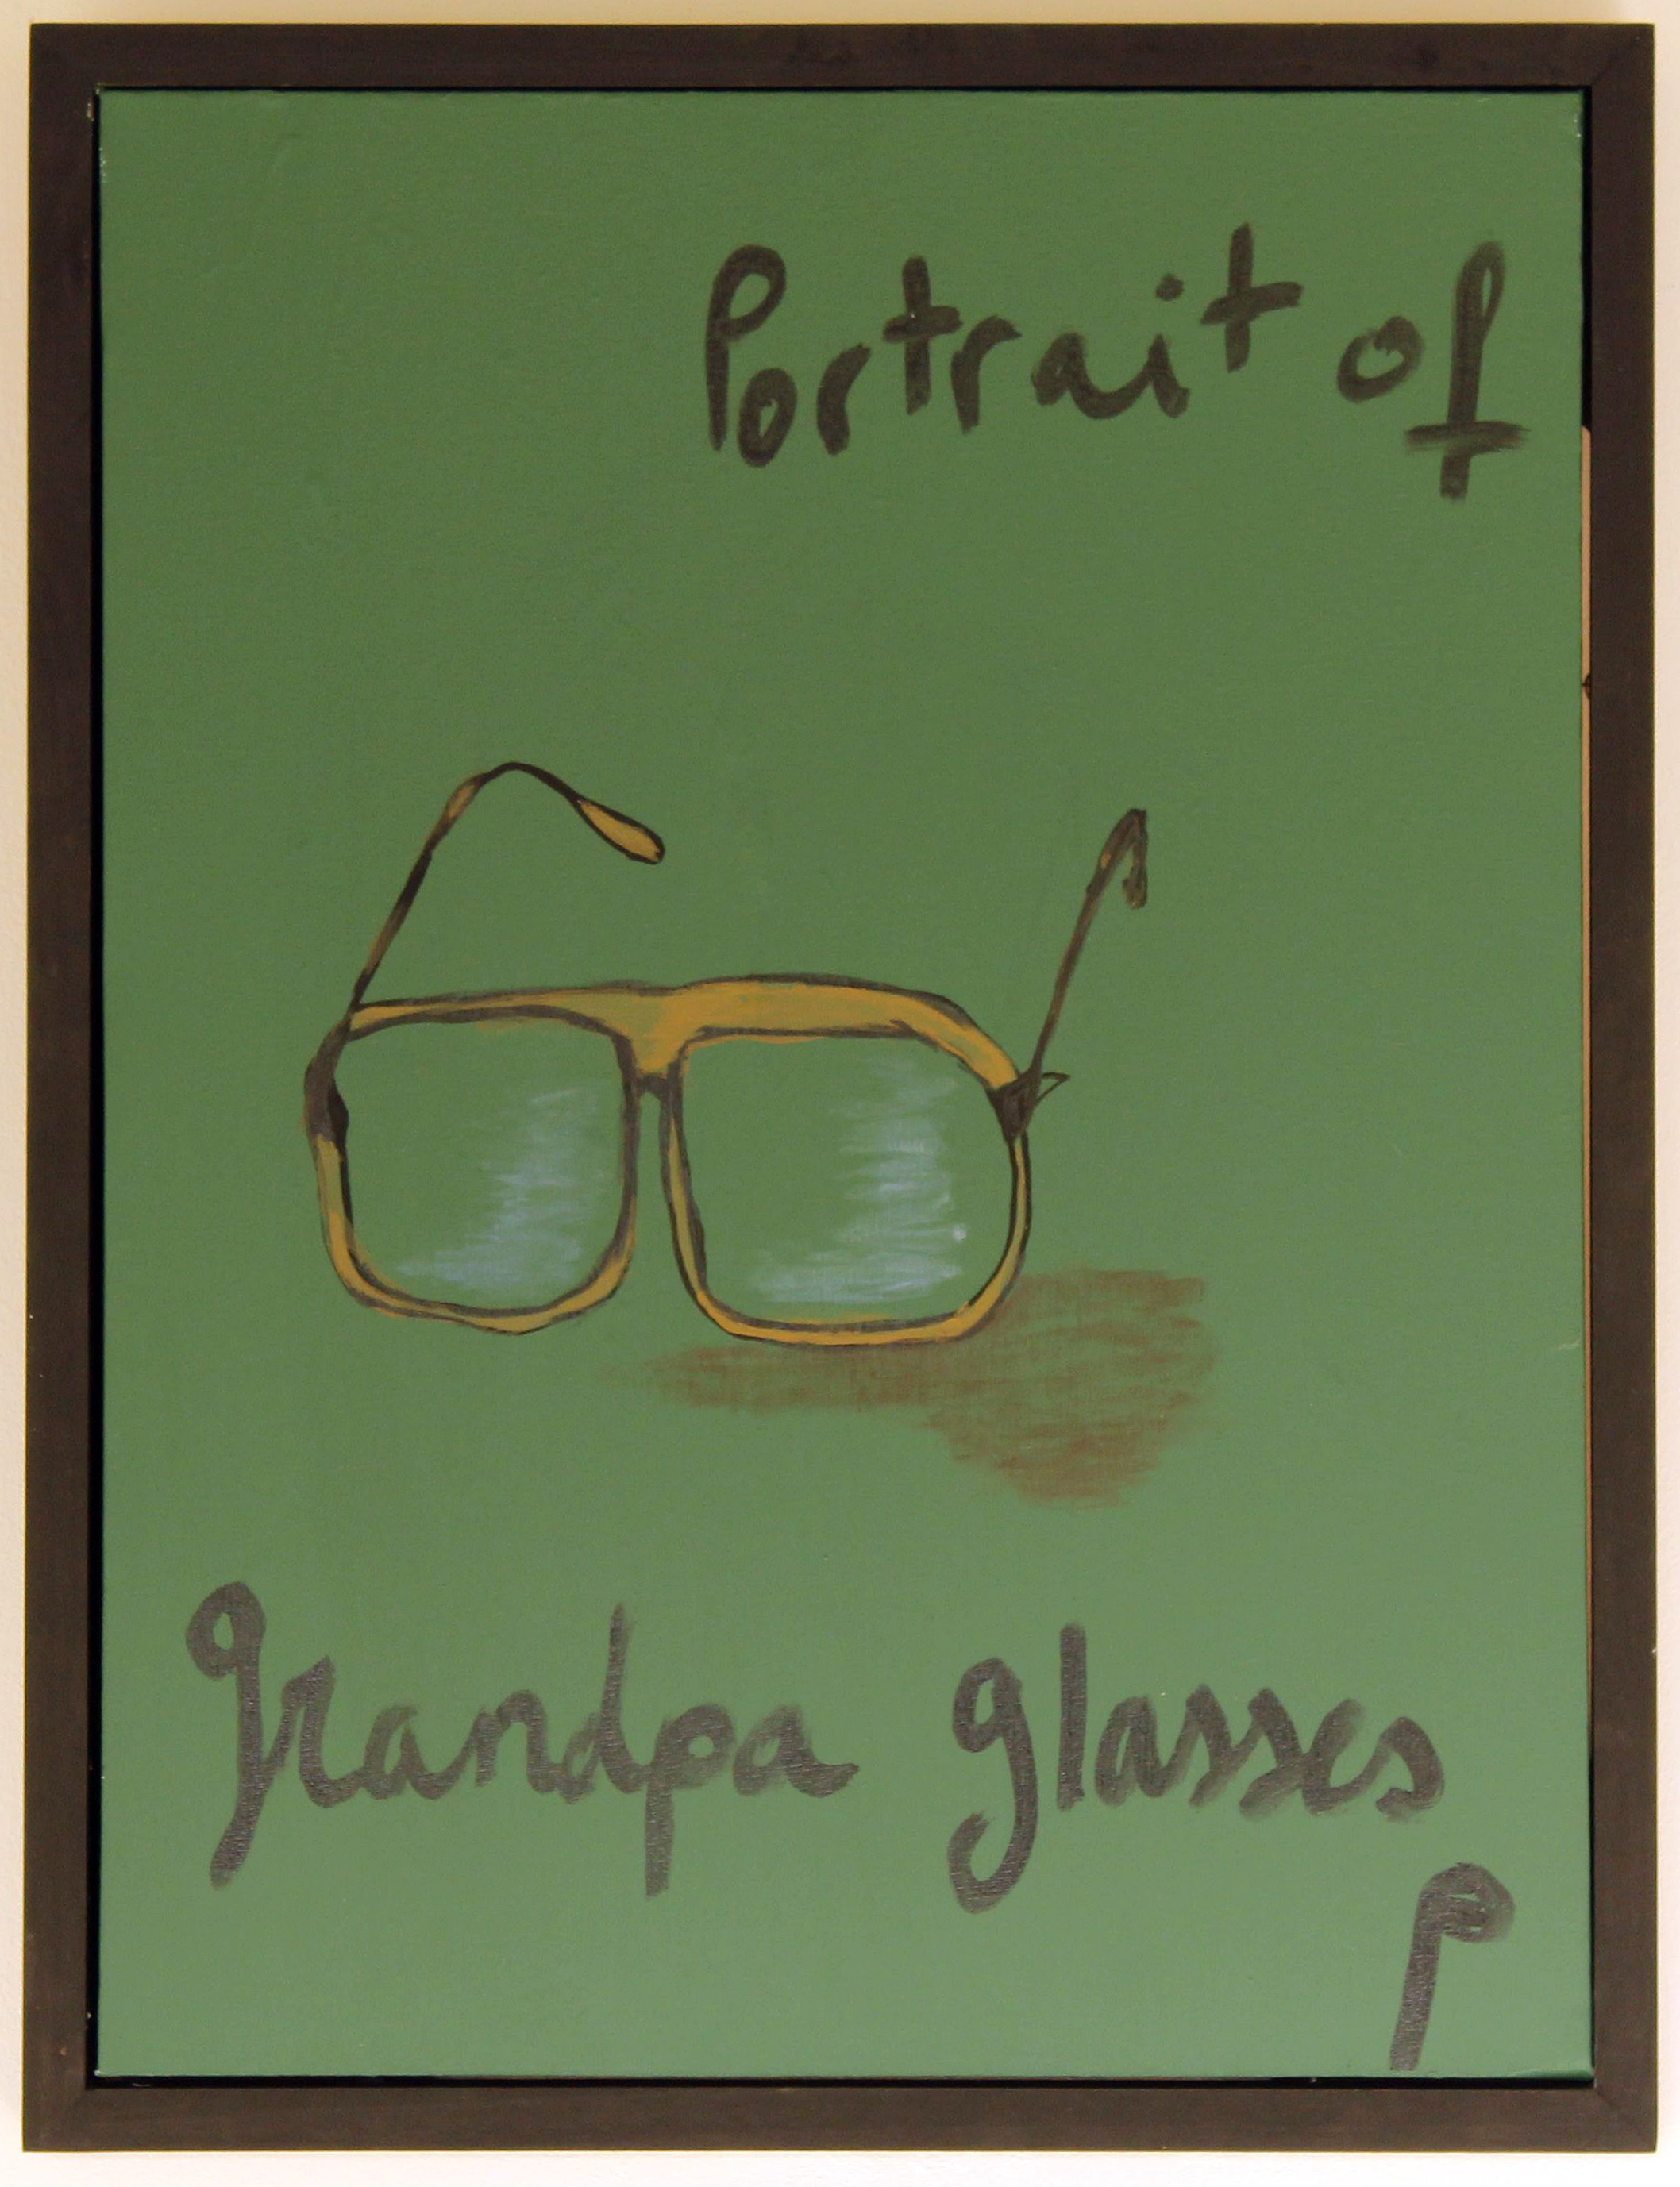 EDITH PERRENOT ' Grandpa's glasses portrait' 2016, acrylic on canvas 71 x 47 cm signed LR